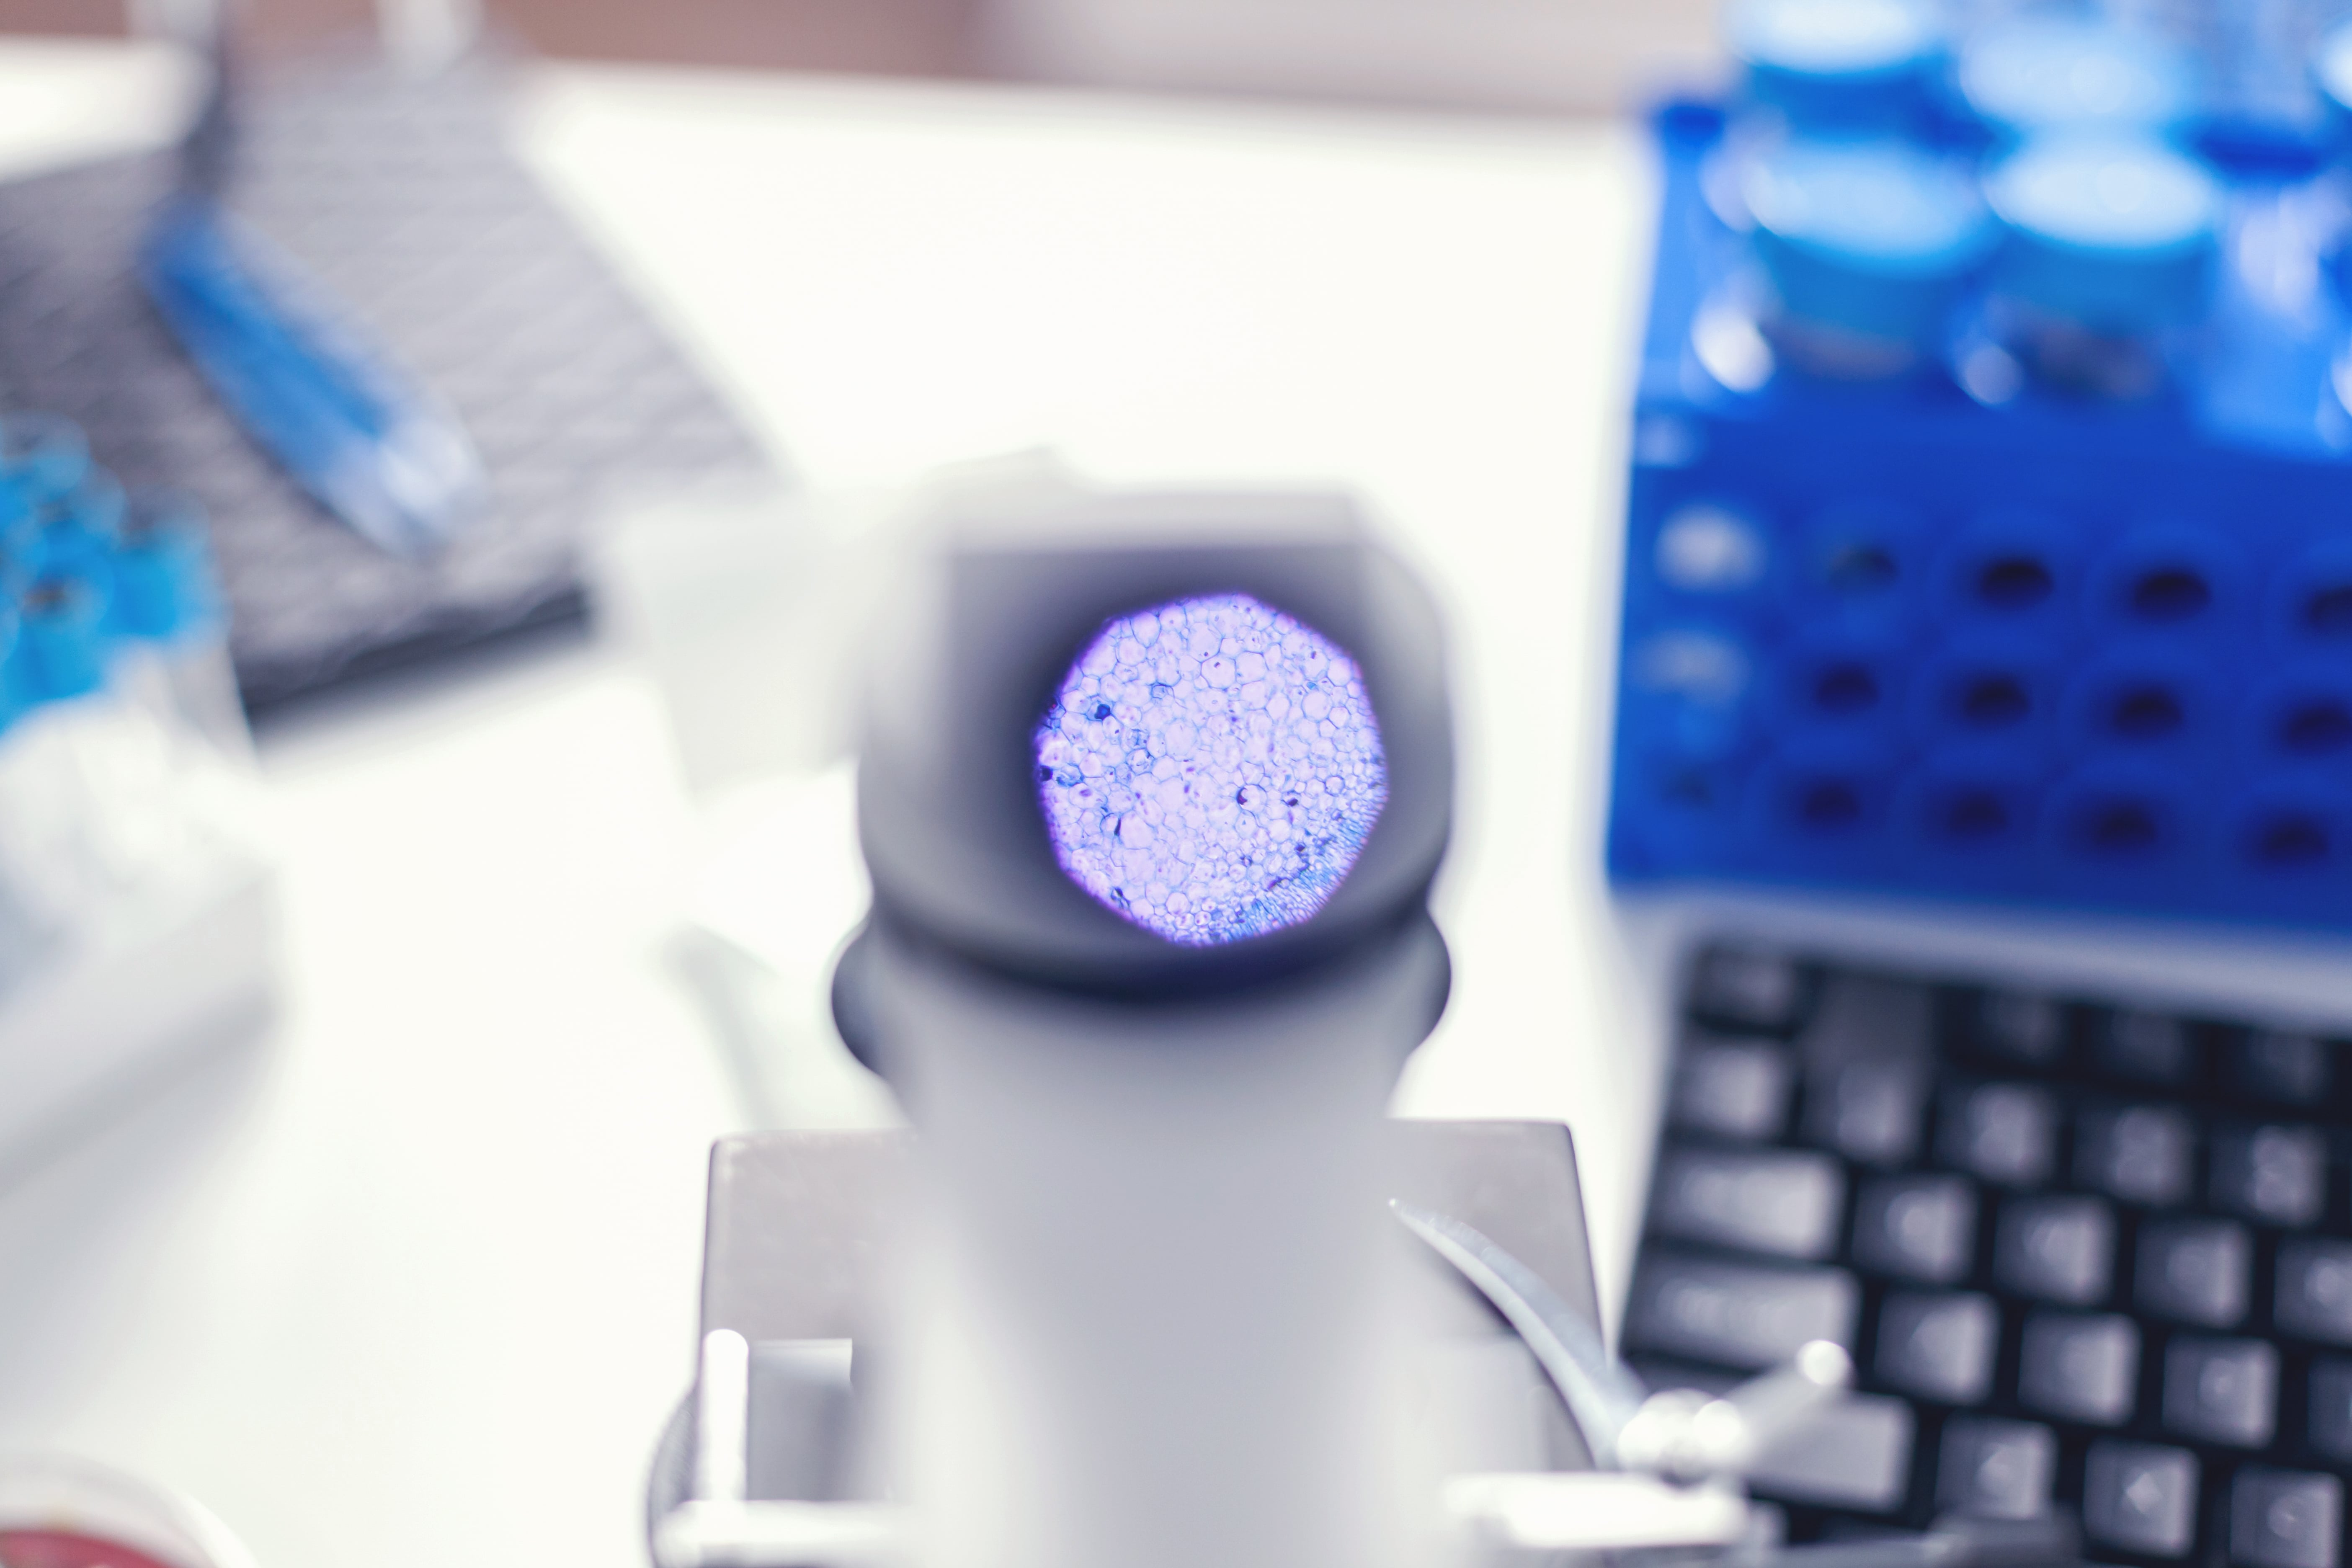 Photo of microscope with an insight of the observed cells